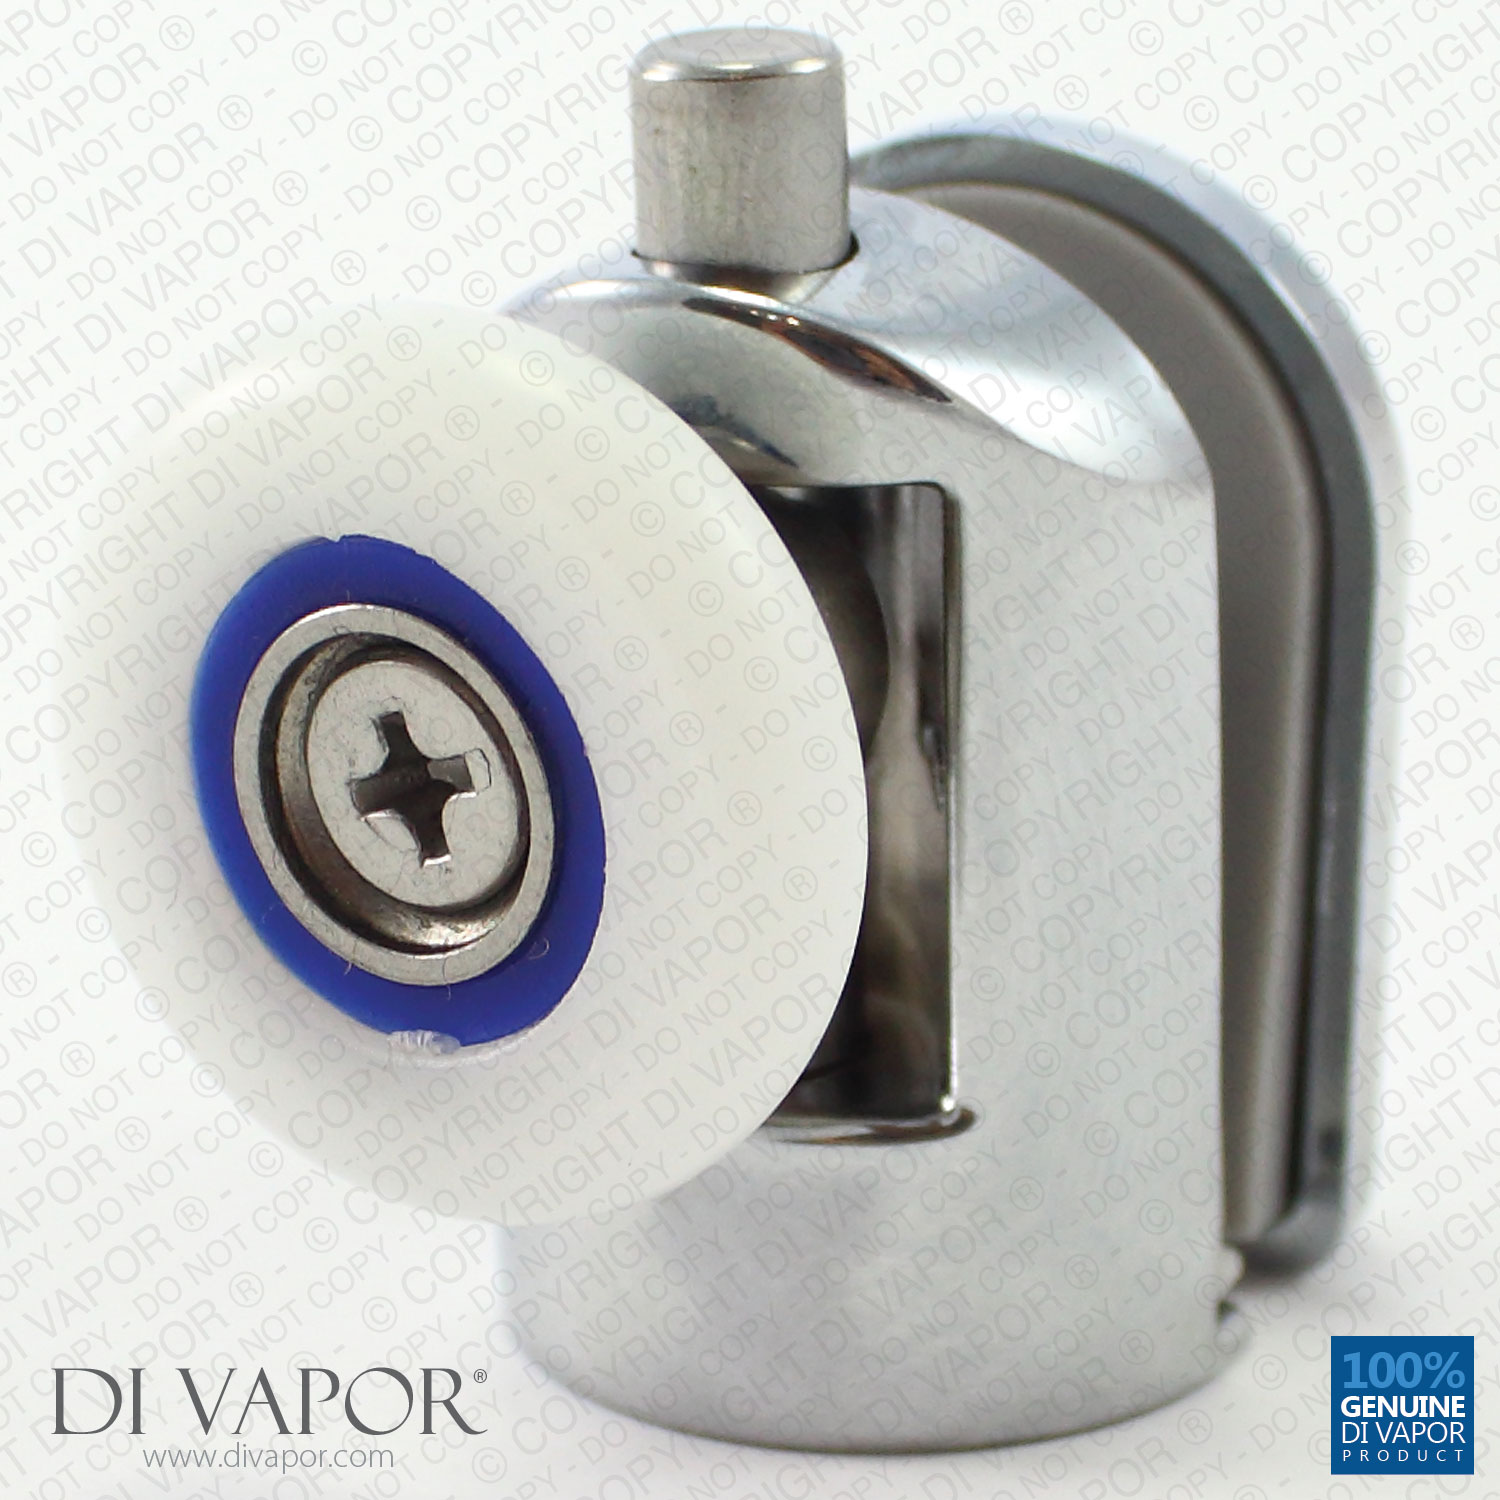 Details About Di Vapor R Bottom Glass Curved Shower Door Roller 6mm To 8mm Glass Metal